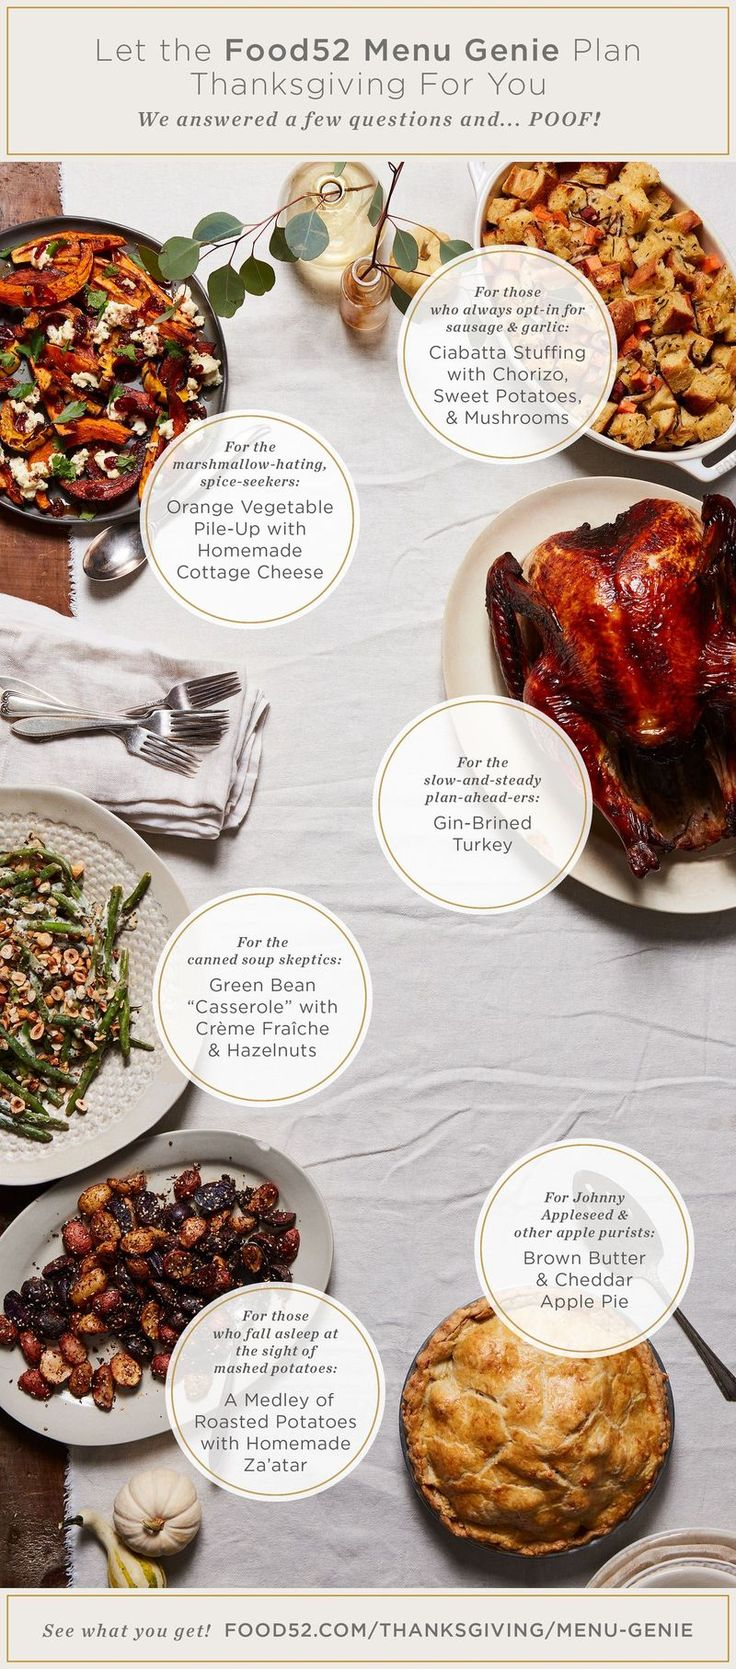 A practically magical menu maker that does the heavy lifting for you